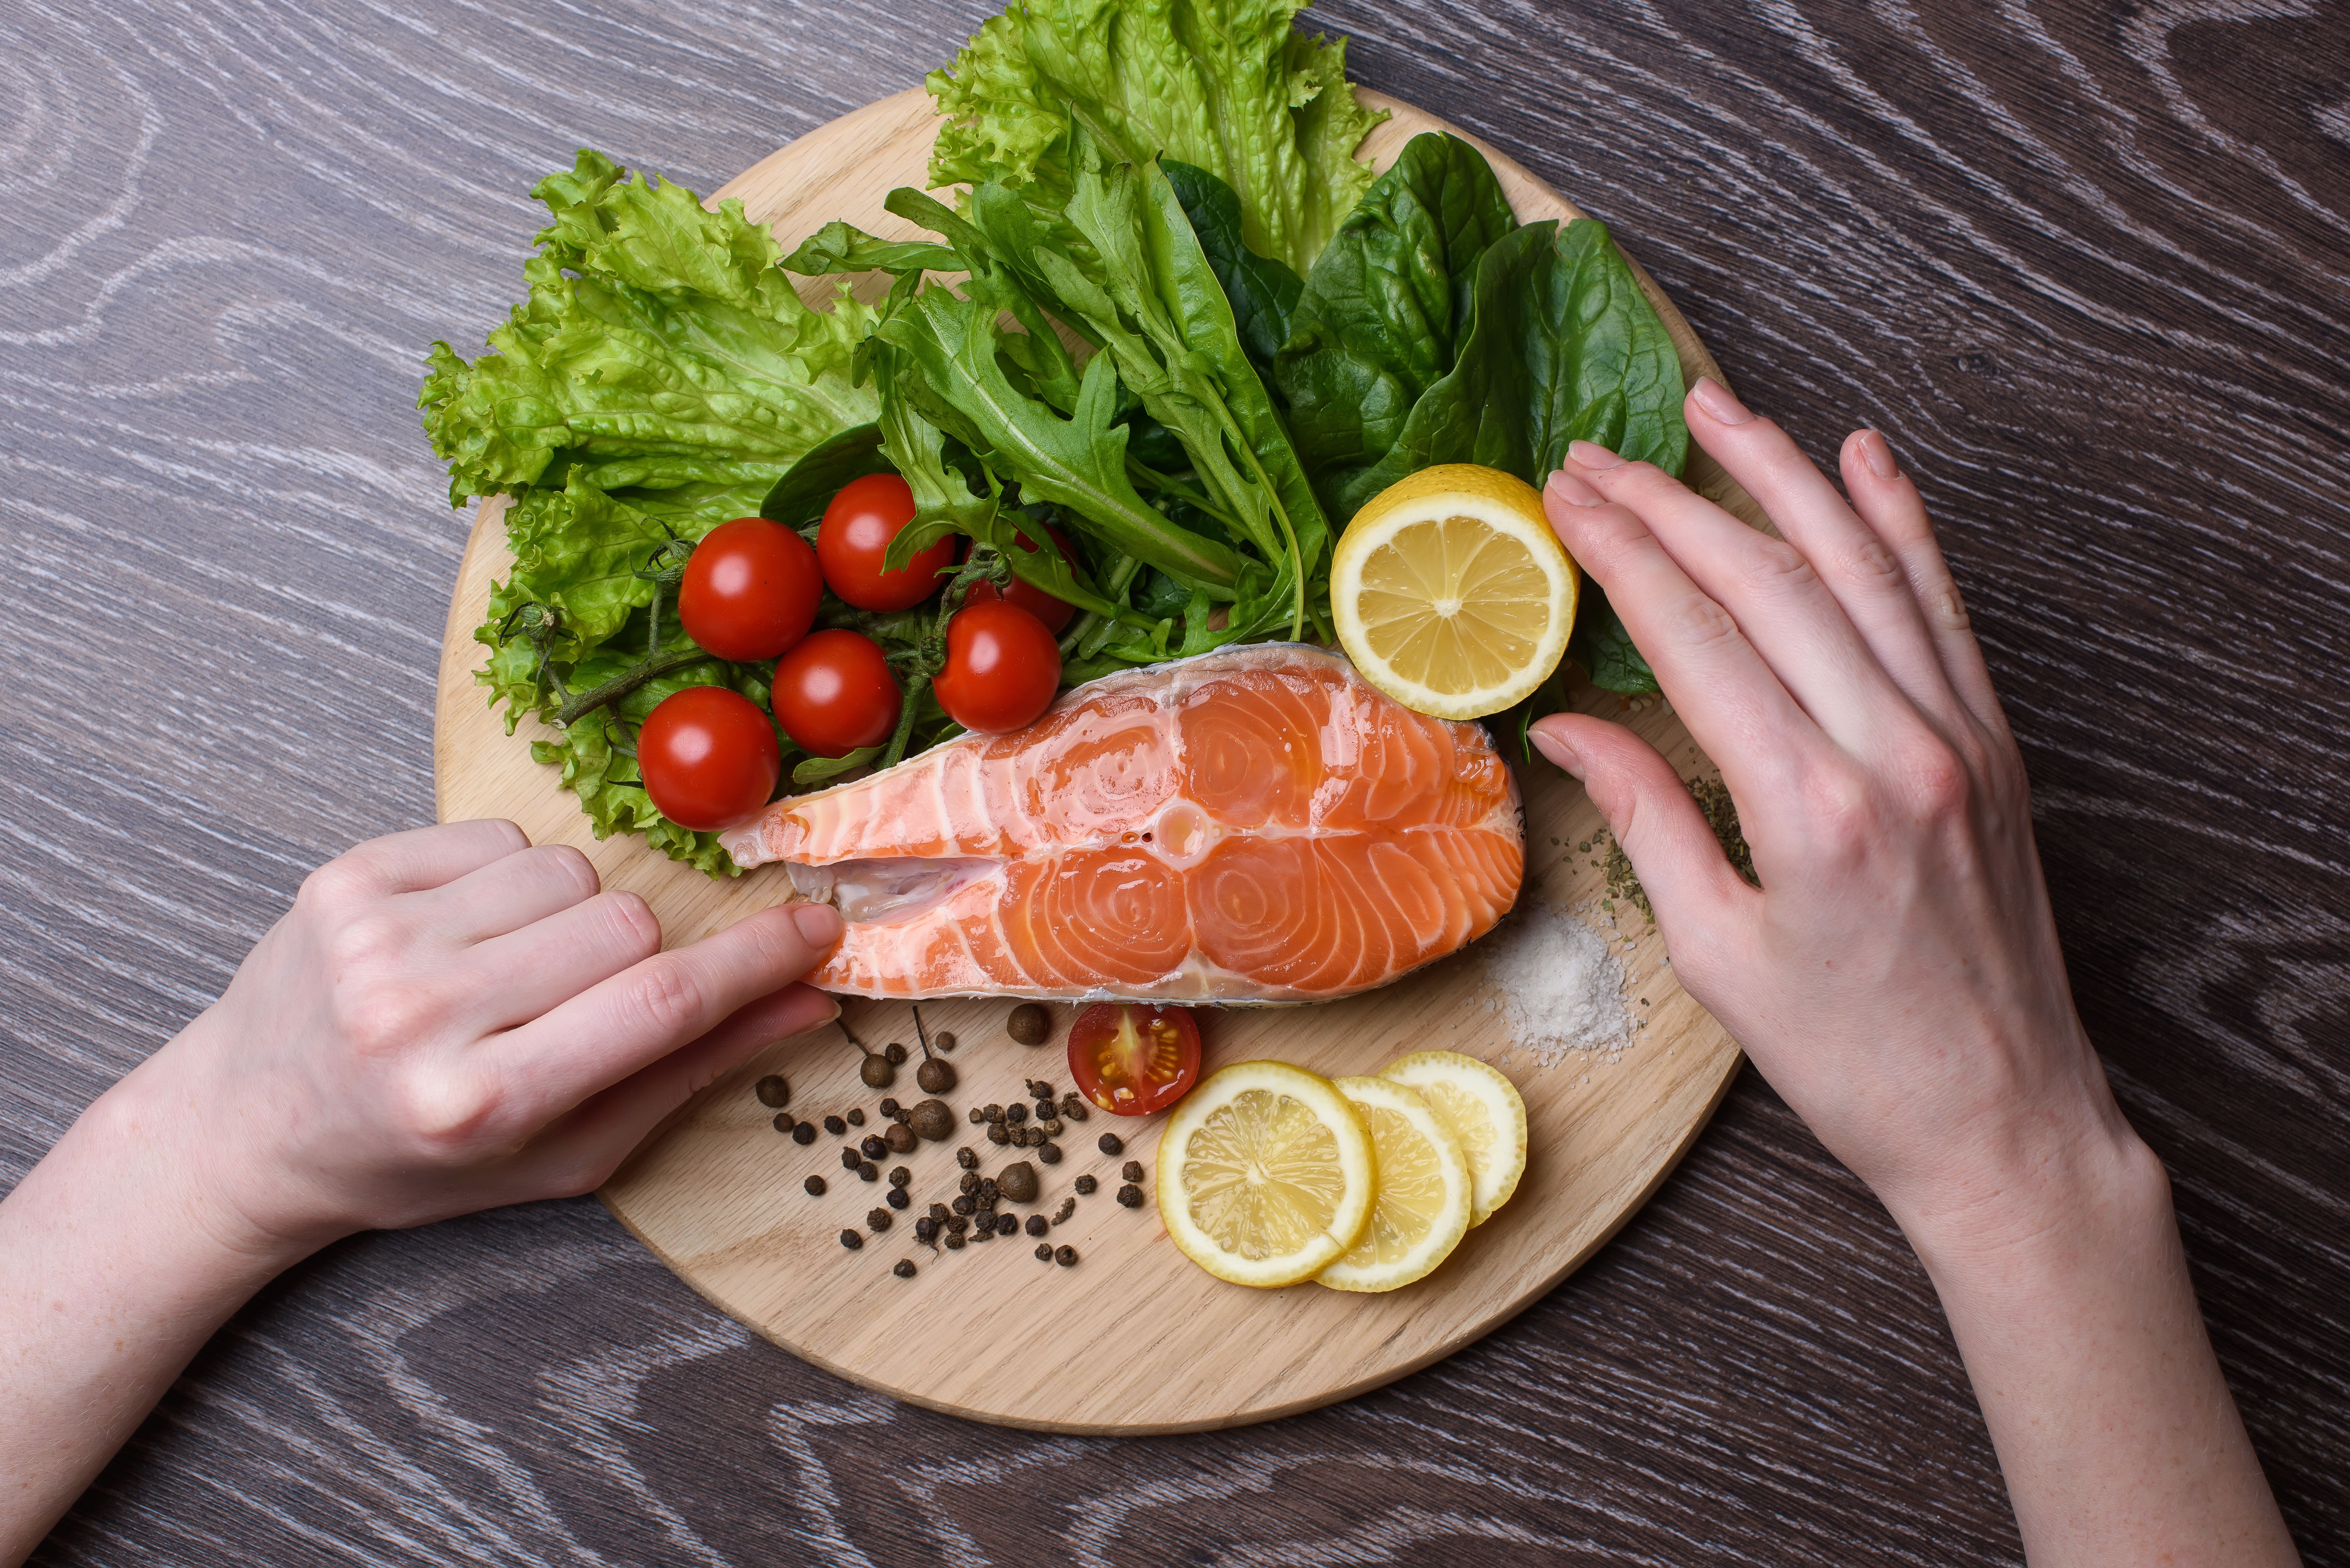 Raw salmon steaks on the wooden board. Lettuce leaves, spices, lemon slices on a wooden board. Woody background. view from above. Hands of a woman in the frame